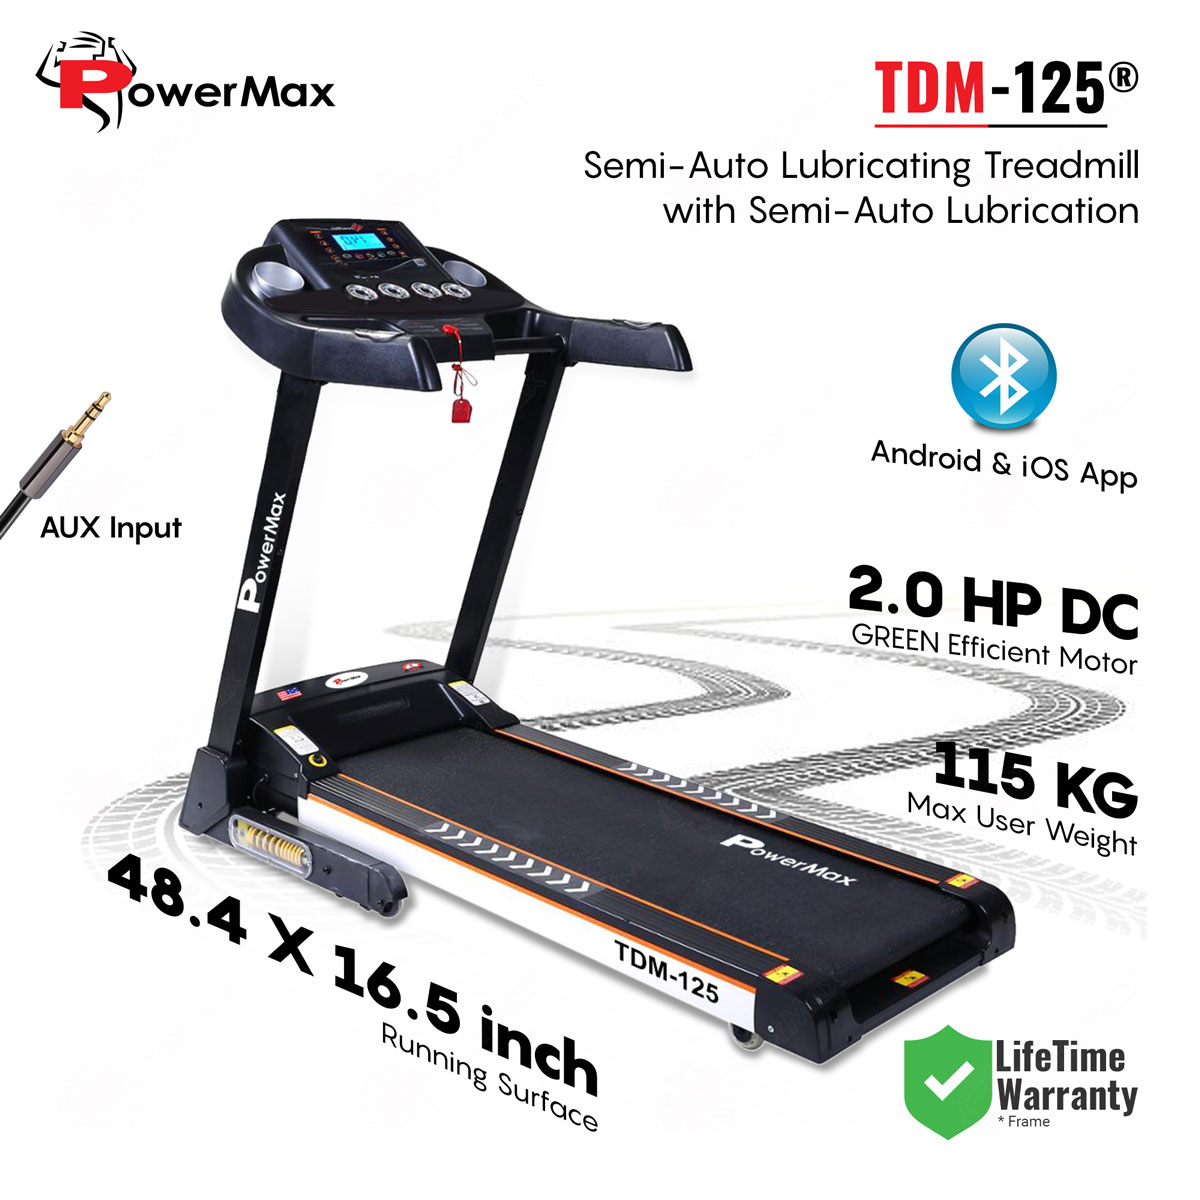 TDM-125 Semi-Auto Lubricating Treadmill with Android & iOS App